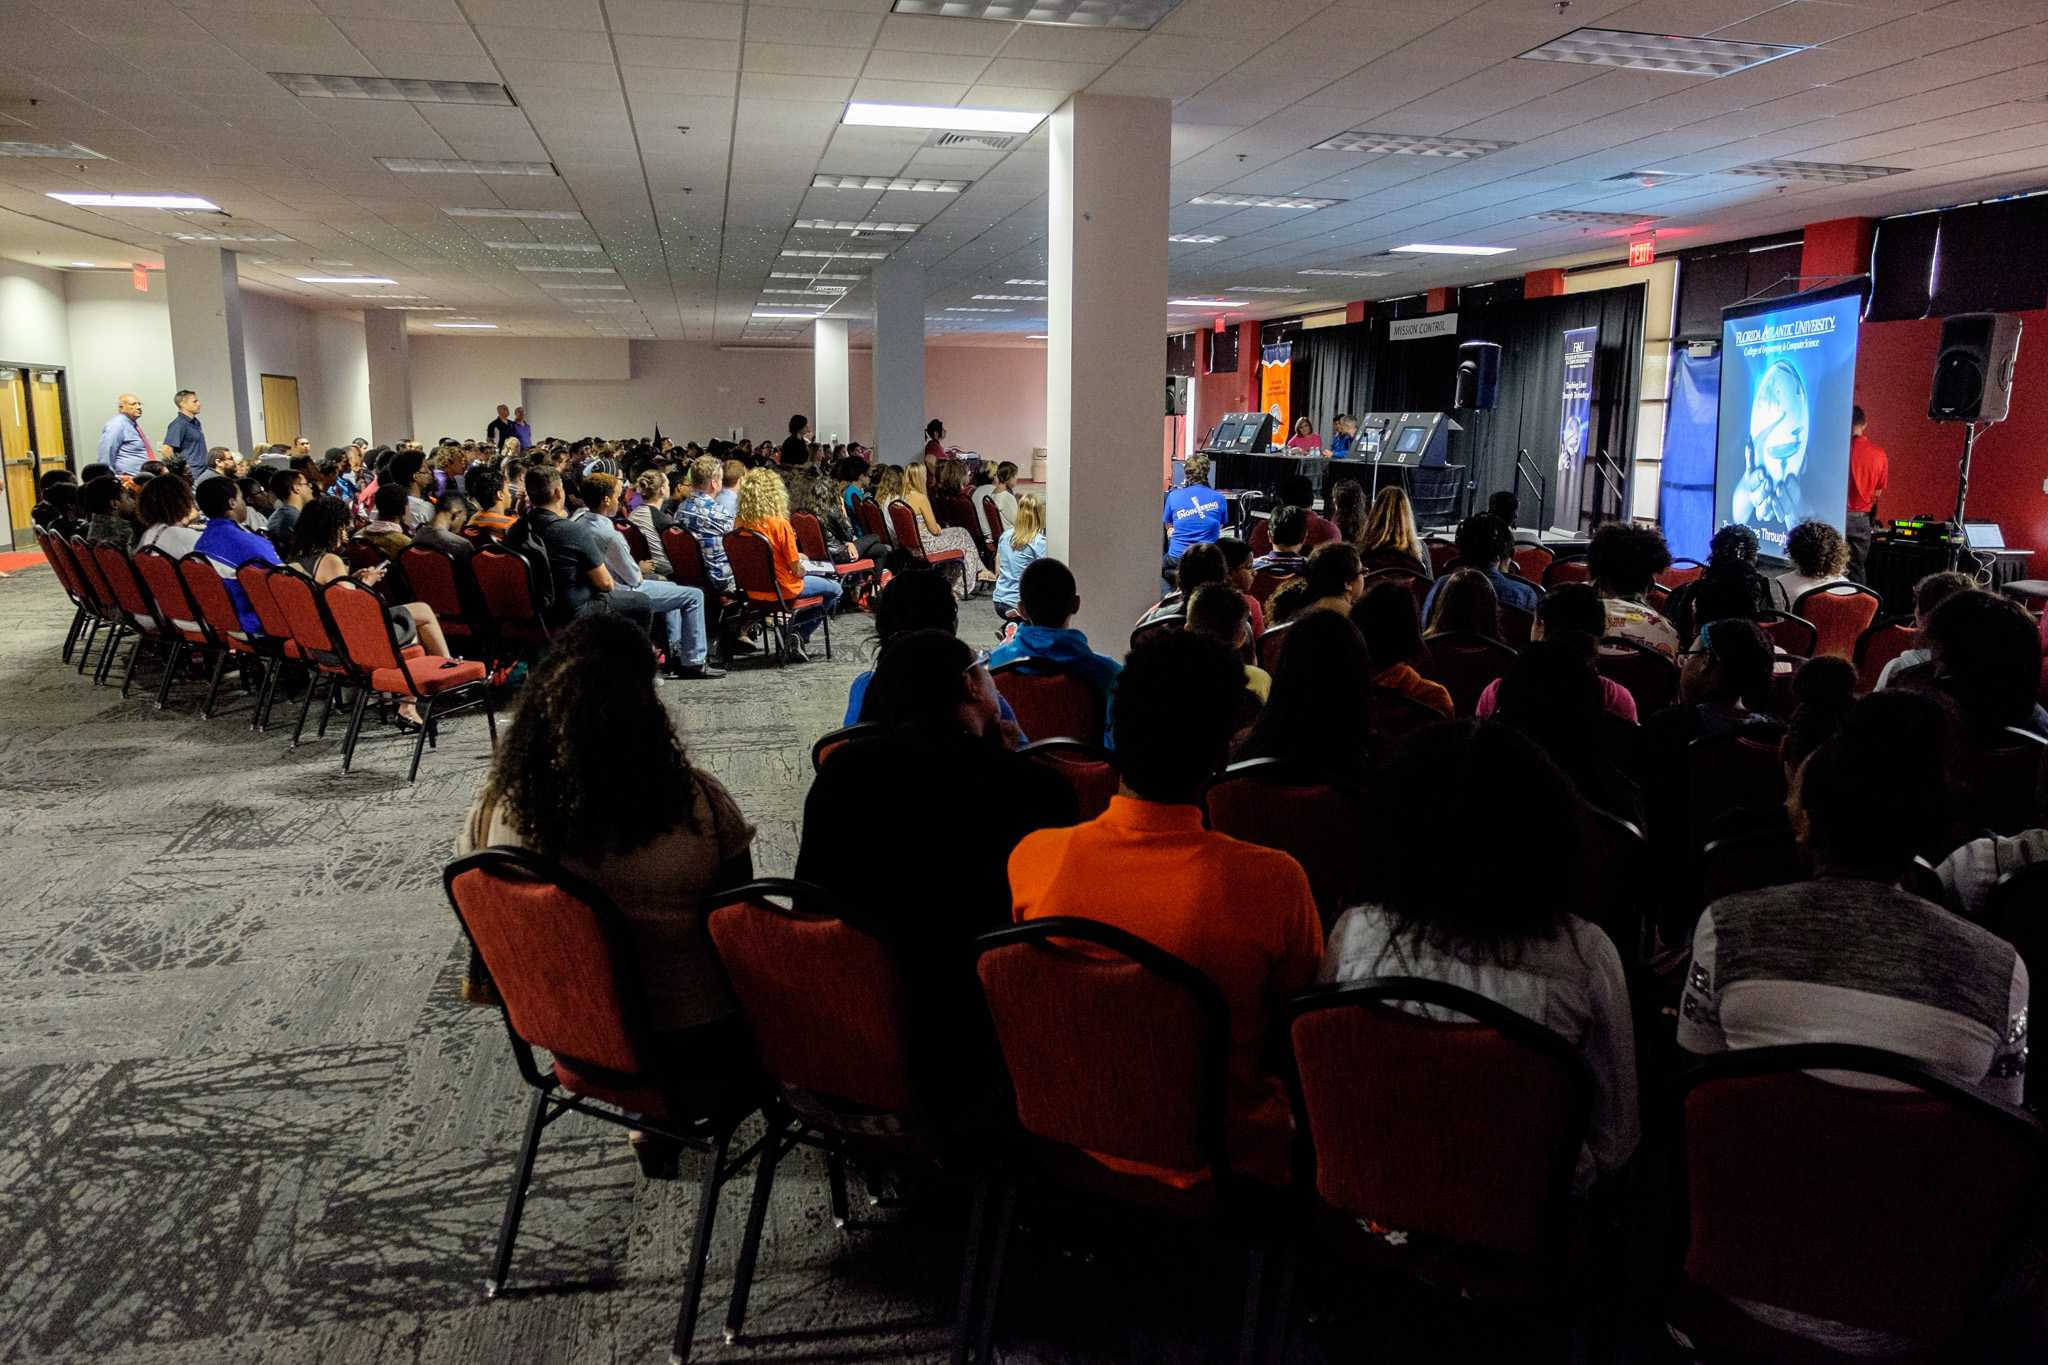 About 250 people attend American Astronaut Steven R. Swanson's presentation on his journey to and from the International Space Station on Oct. 30. Mohammed F Emran | Asst. Creative Director